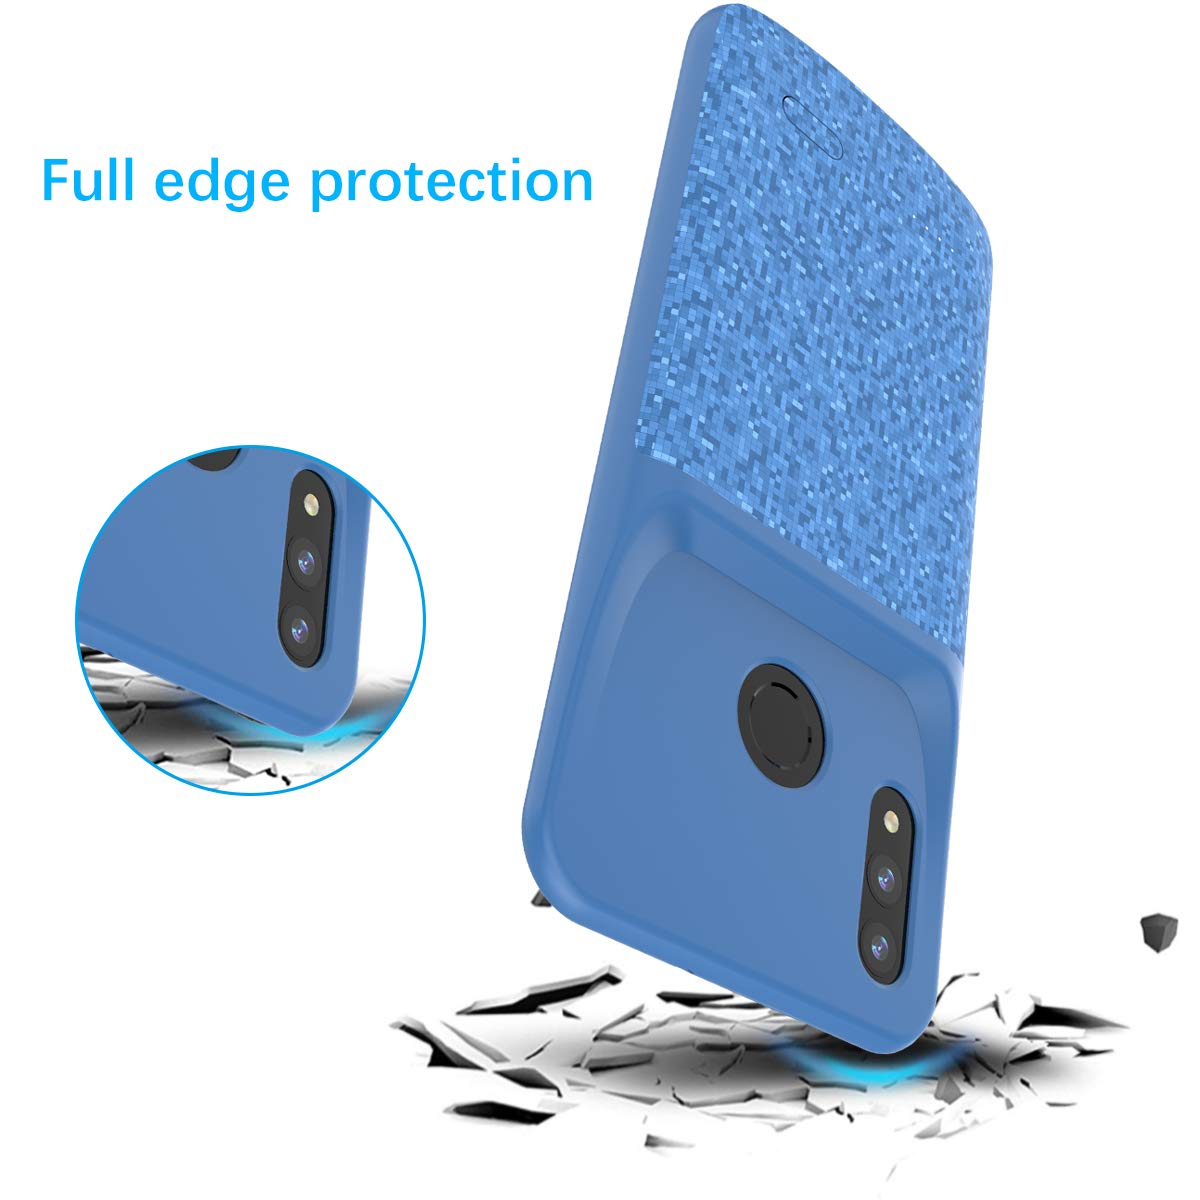 Yadasaro Ultra Fin Portable Rechargeable Batterie Power Bank Externe Chargeur Smart Battery Case pour Huawei Honor 10 L Coque Batterie Huawei Honor 10 Lite 2019 P Smart 4700mAh 2019